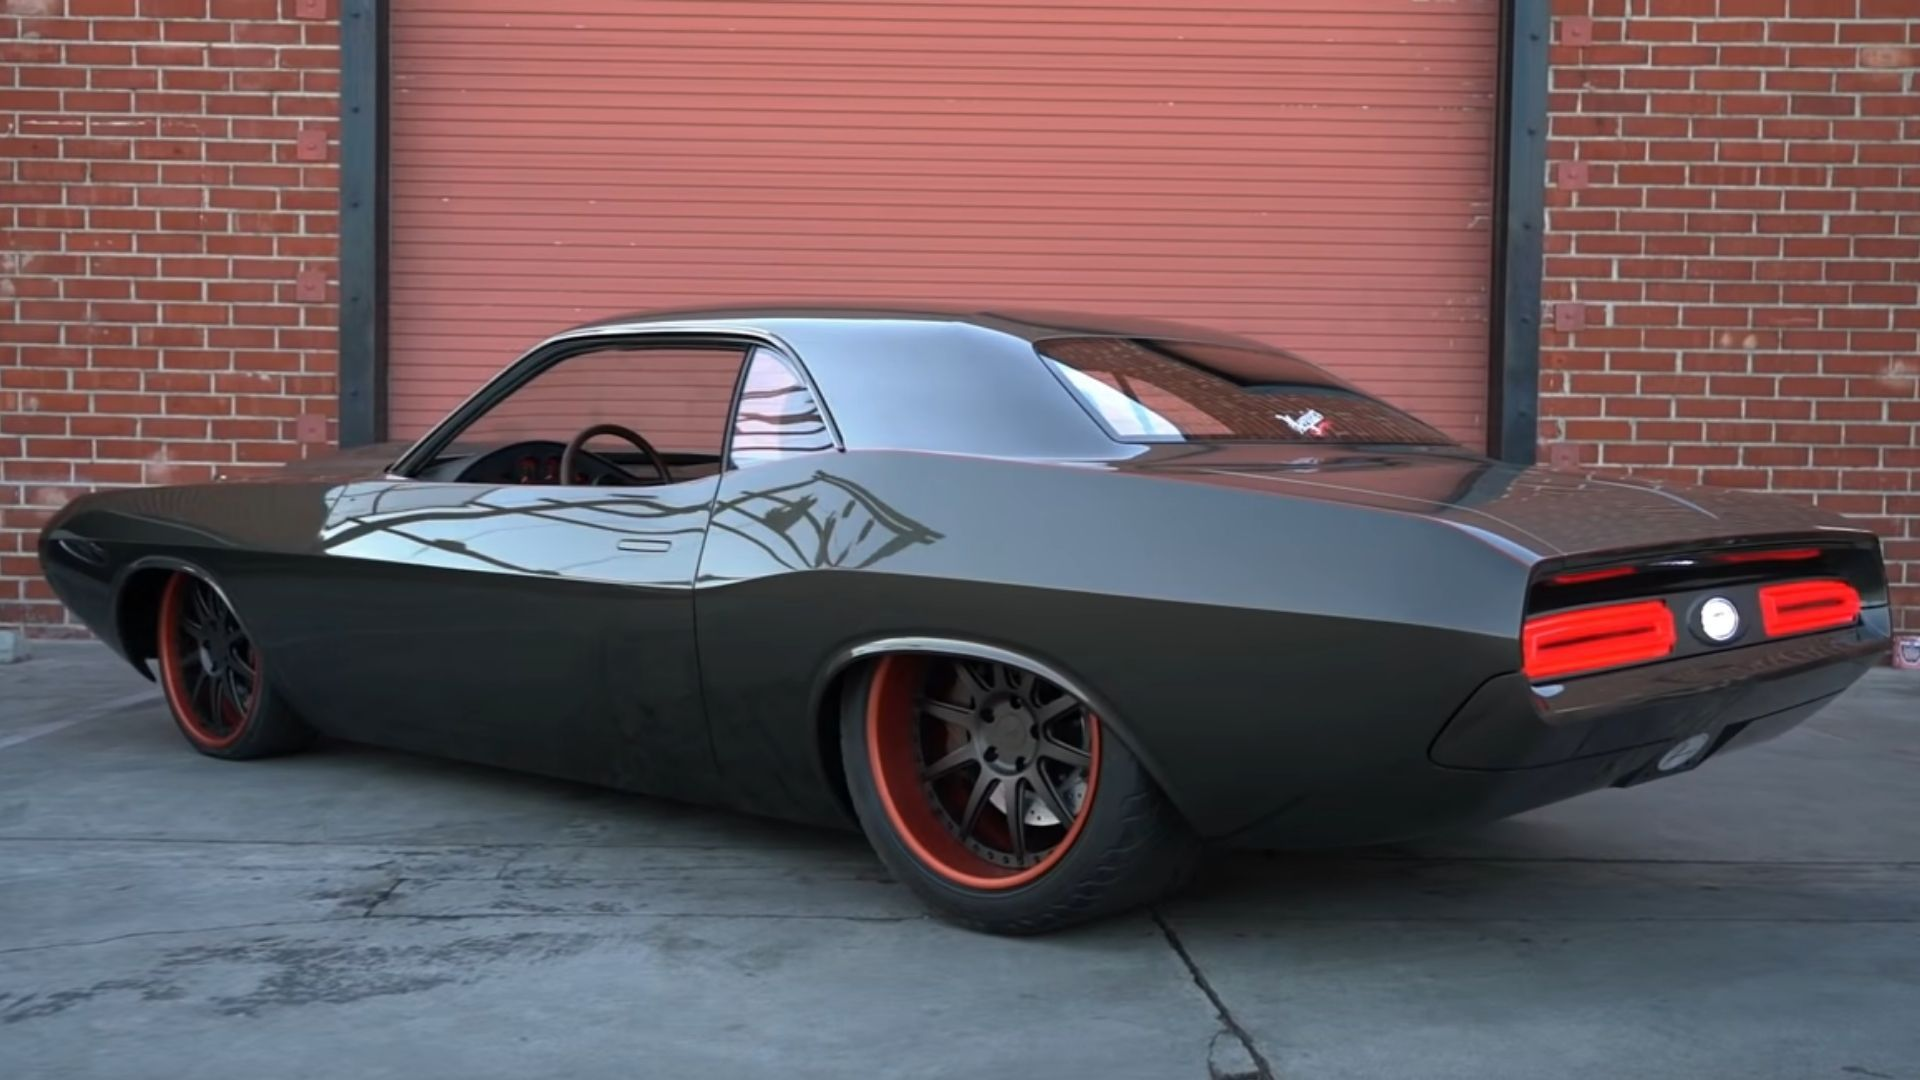 Havoc Is A Bagged 2500-HP Dodge Challenger Restomod